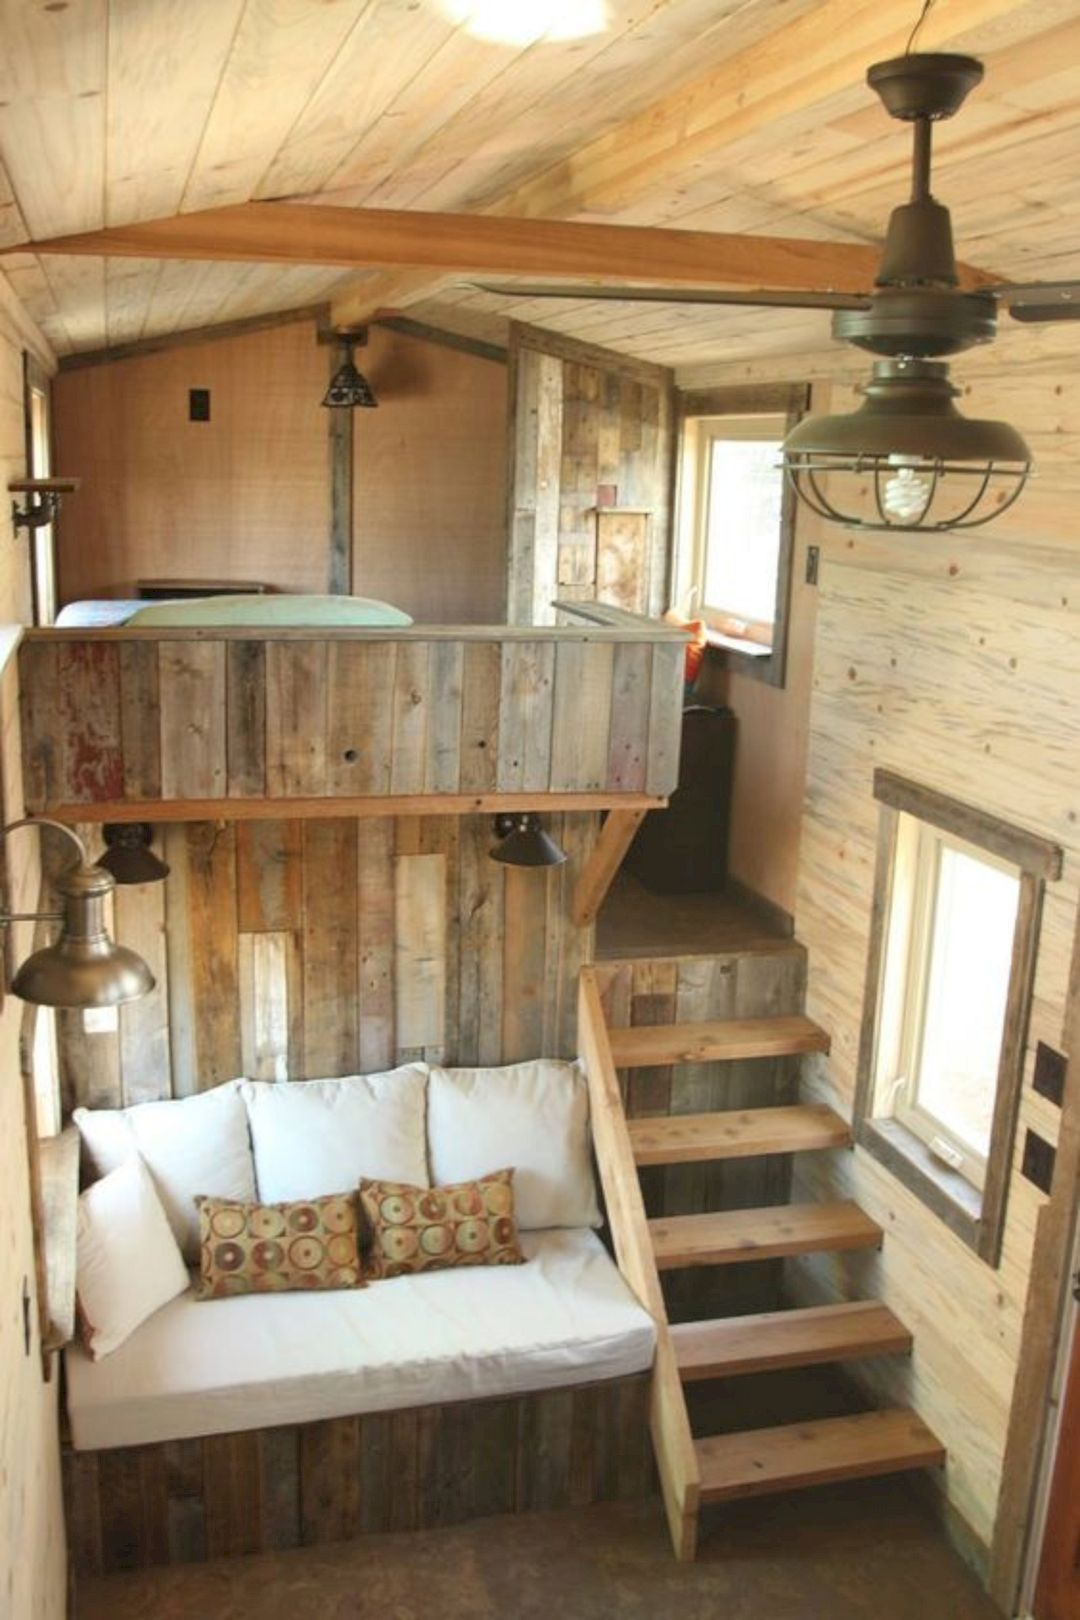 16 tiny house interior design ideas gorgeous interior - House interior design ideas pictures ...